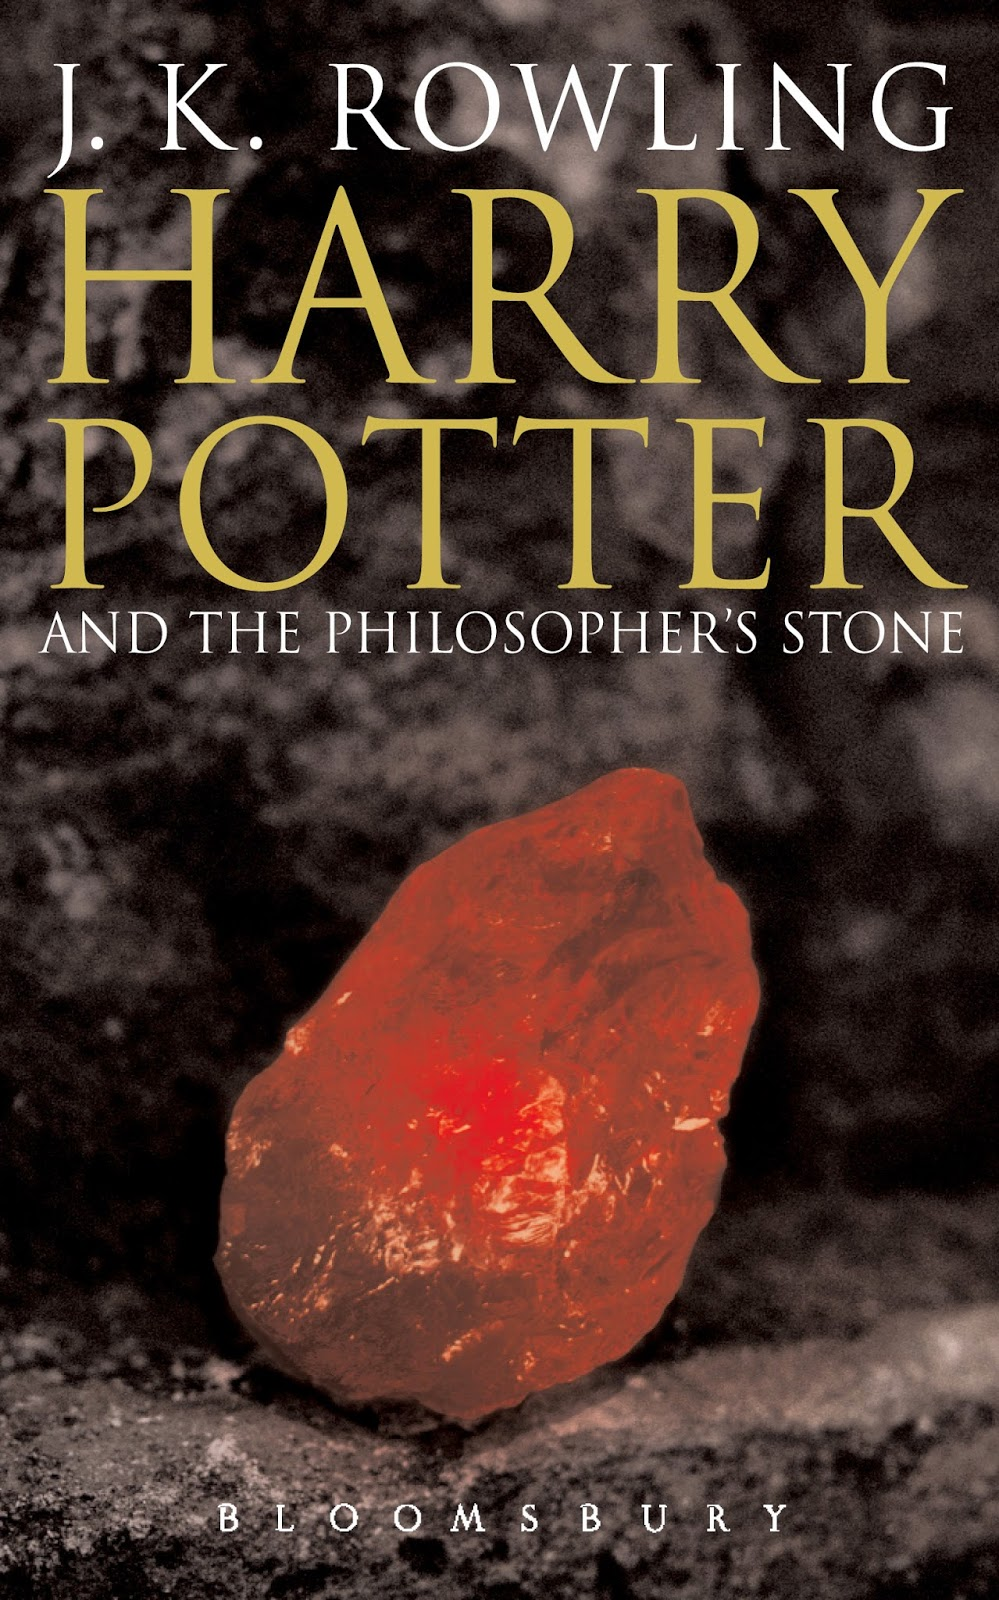 http://harrypotterfanzone.com/book-1/cover-art/